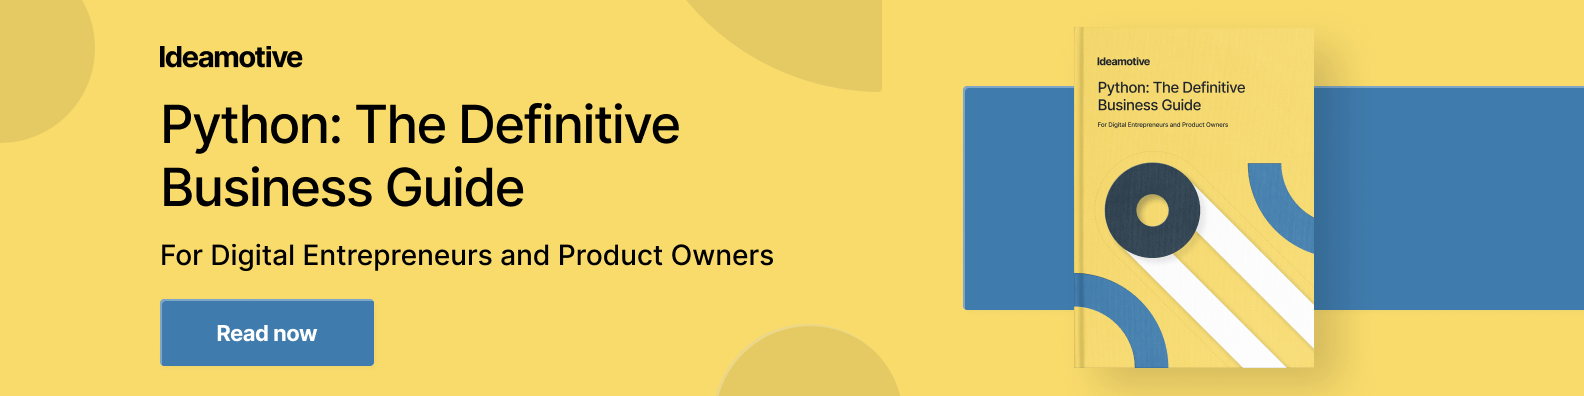 Python_ The Definitive Business Guide